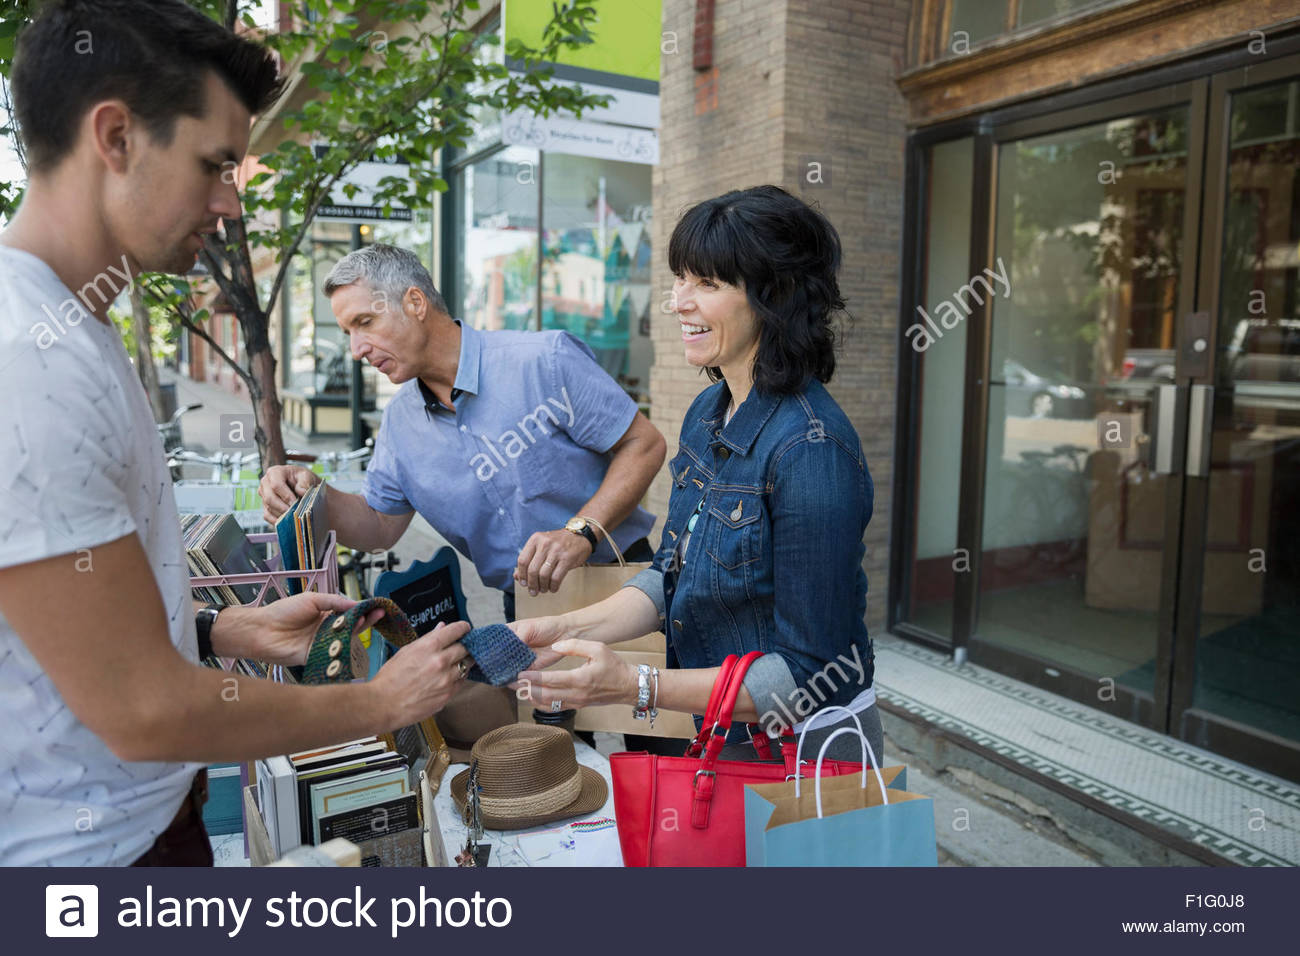 Woman shopping sidewalk sale - Stock Image